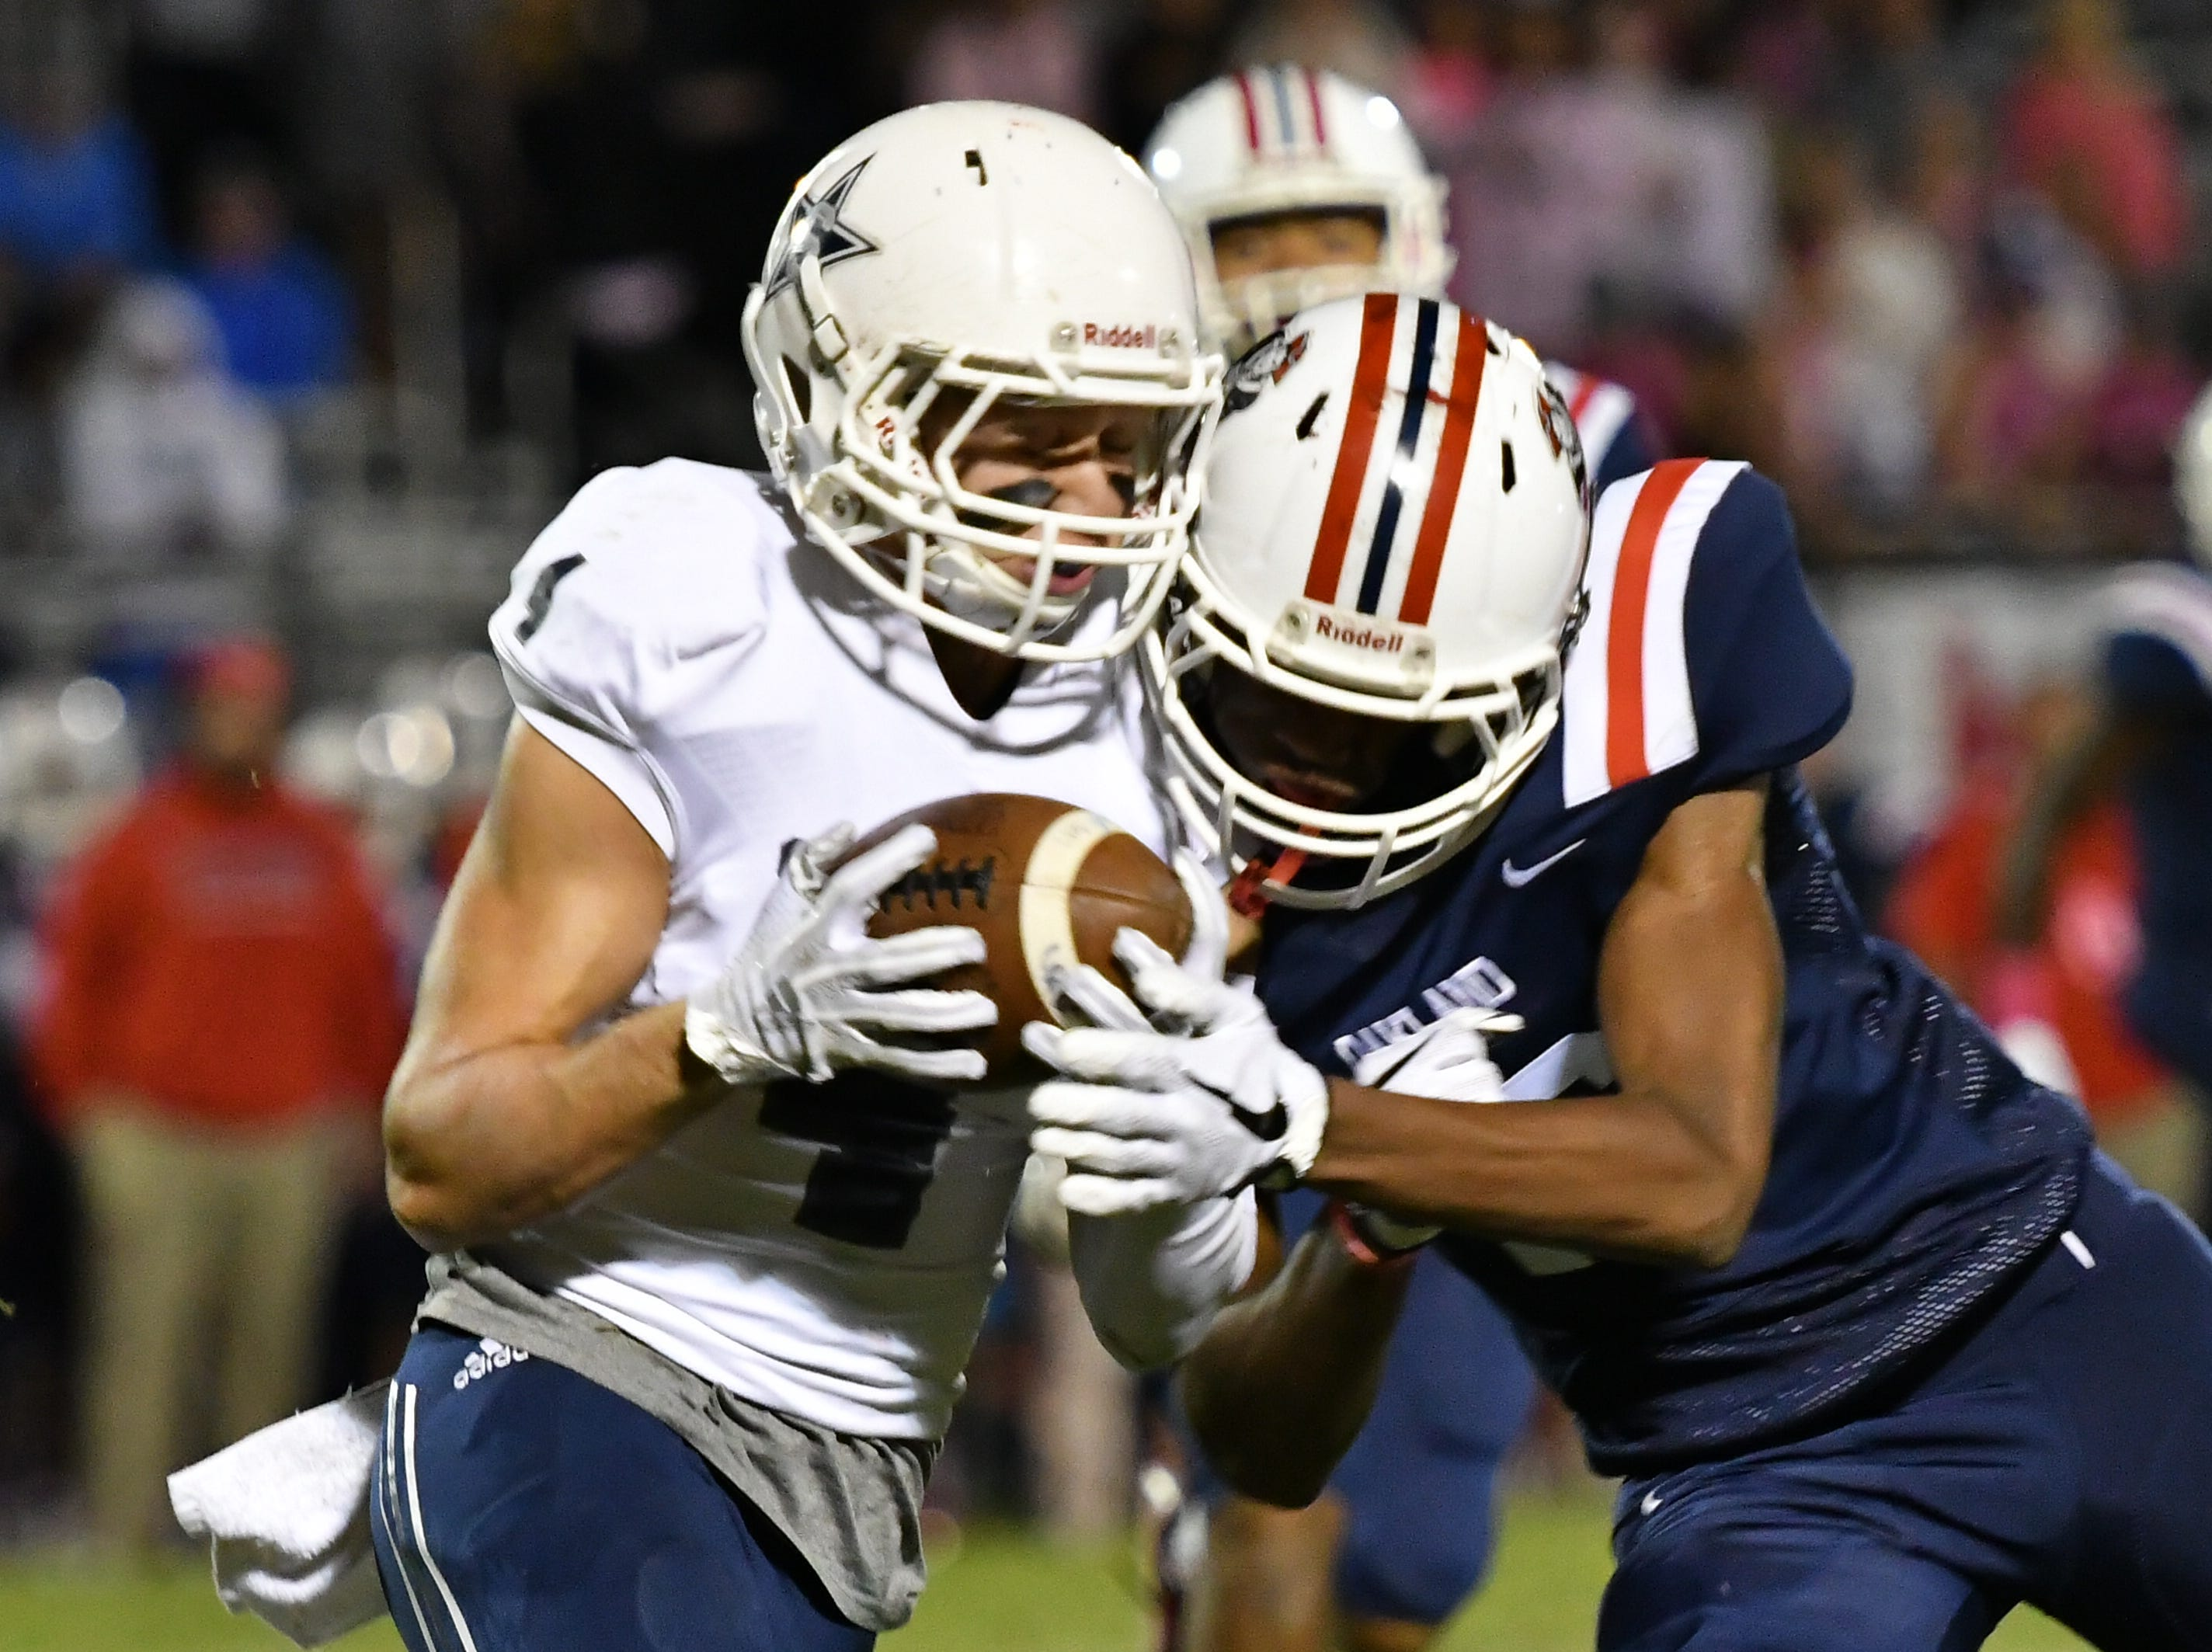 Siegel's Evan Milligan picks up an Oakland fumble and carries the ball downfield Friday night.